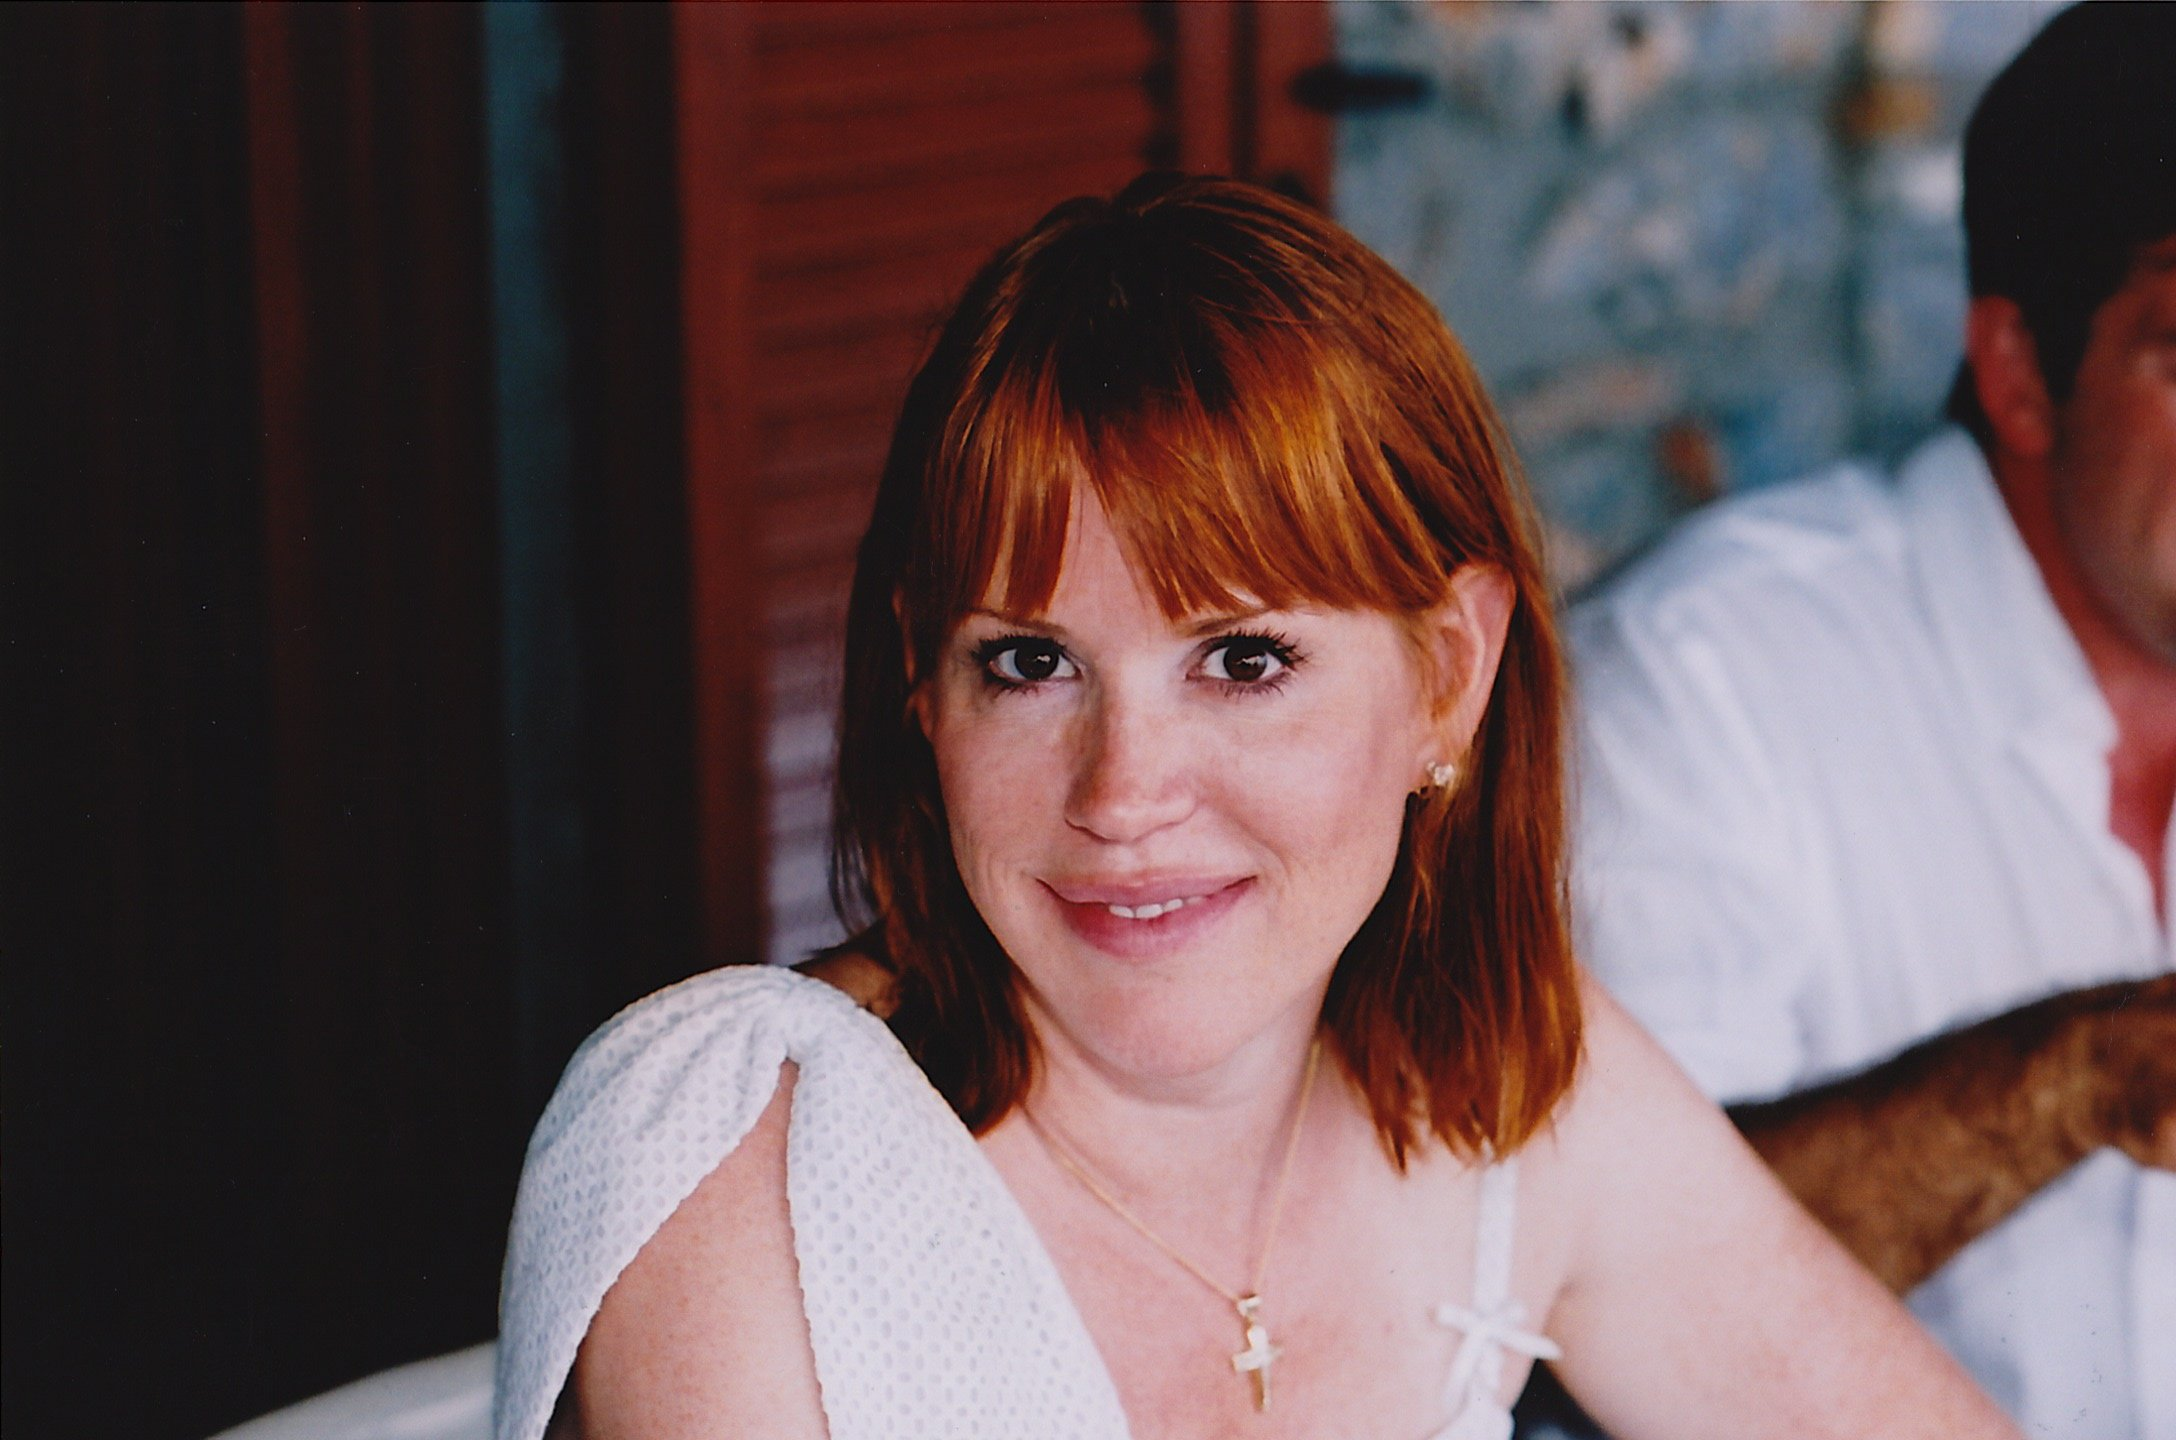 Molly Ringwald in Greece on August 21, 2010 | Photo: Wikimedia/Panio Gianopoulos